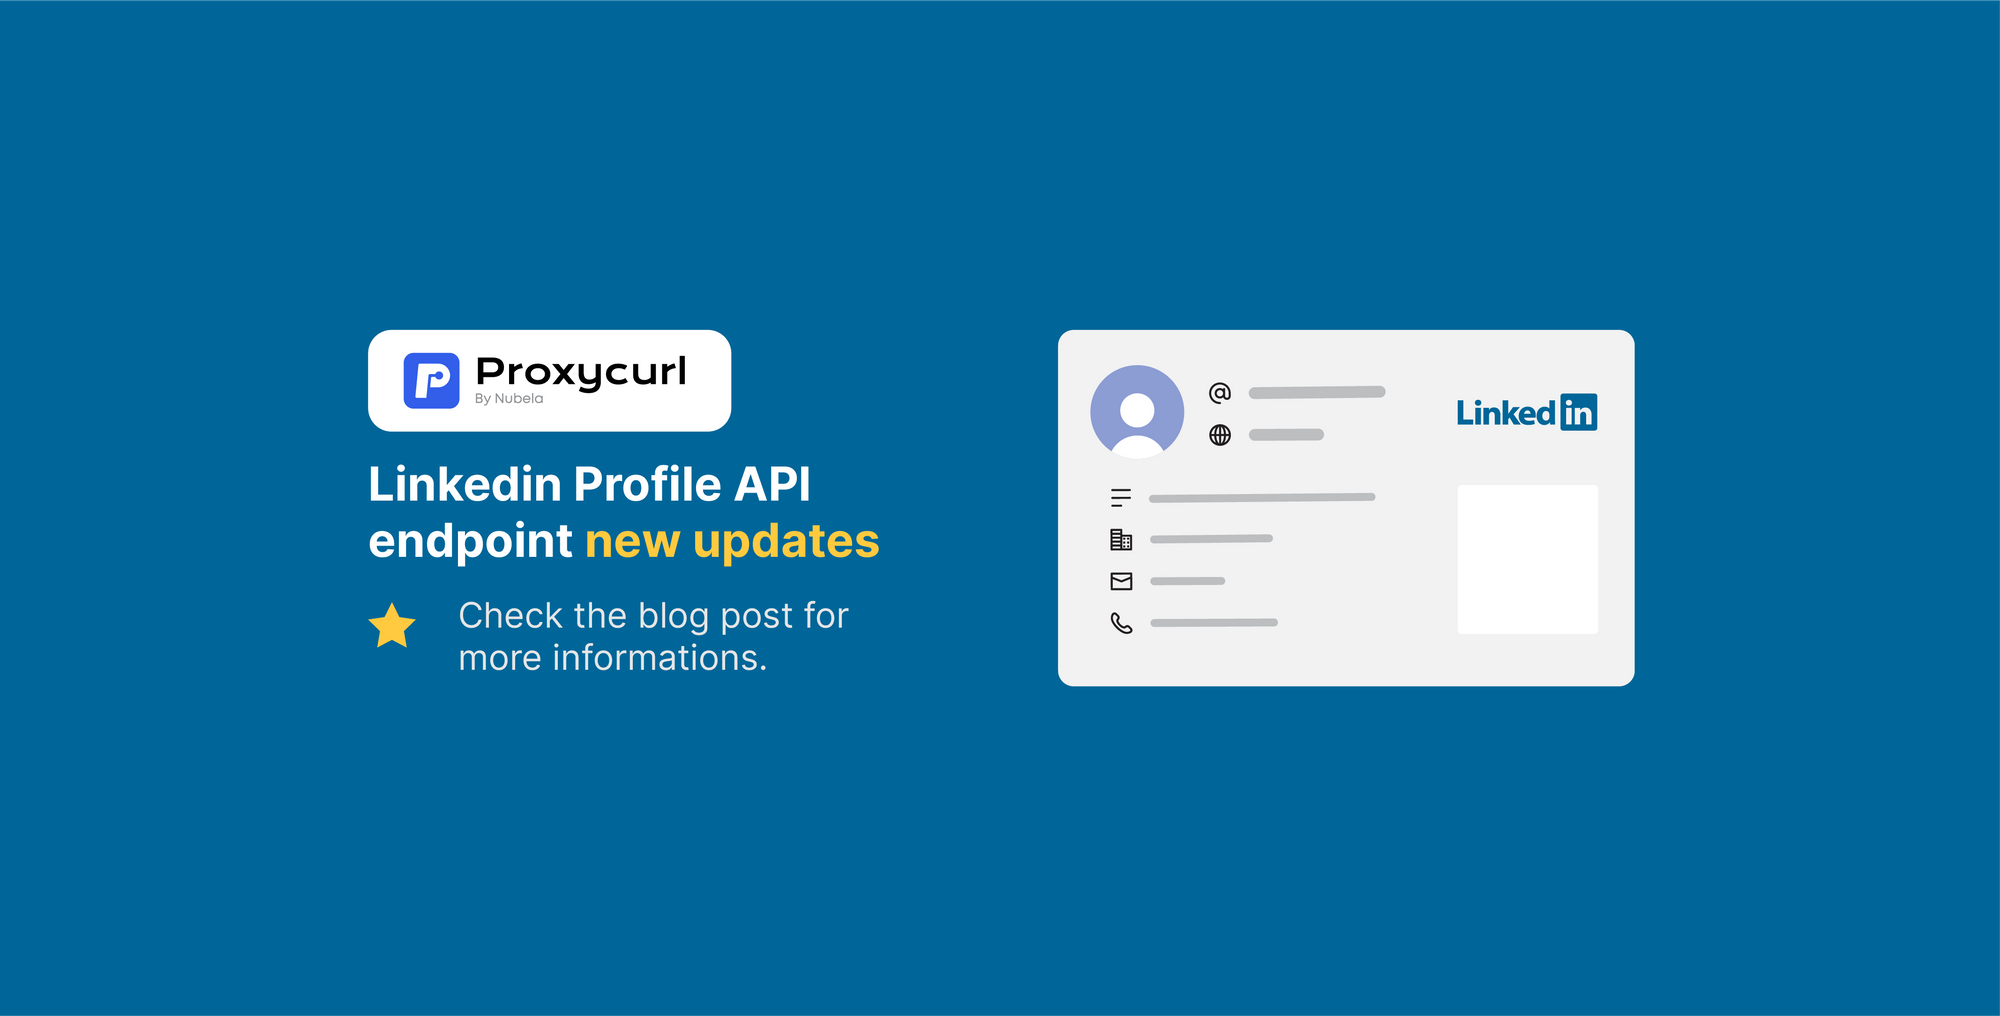 We added activity, articles, recommendations and MORE to our Linkedin Profile API endpoint